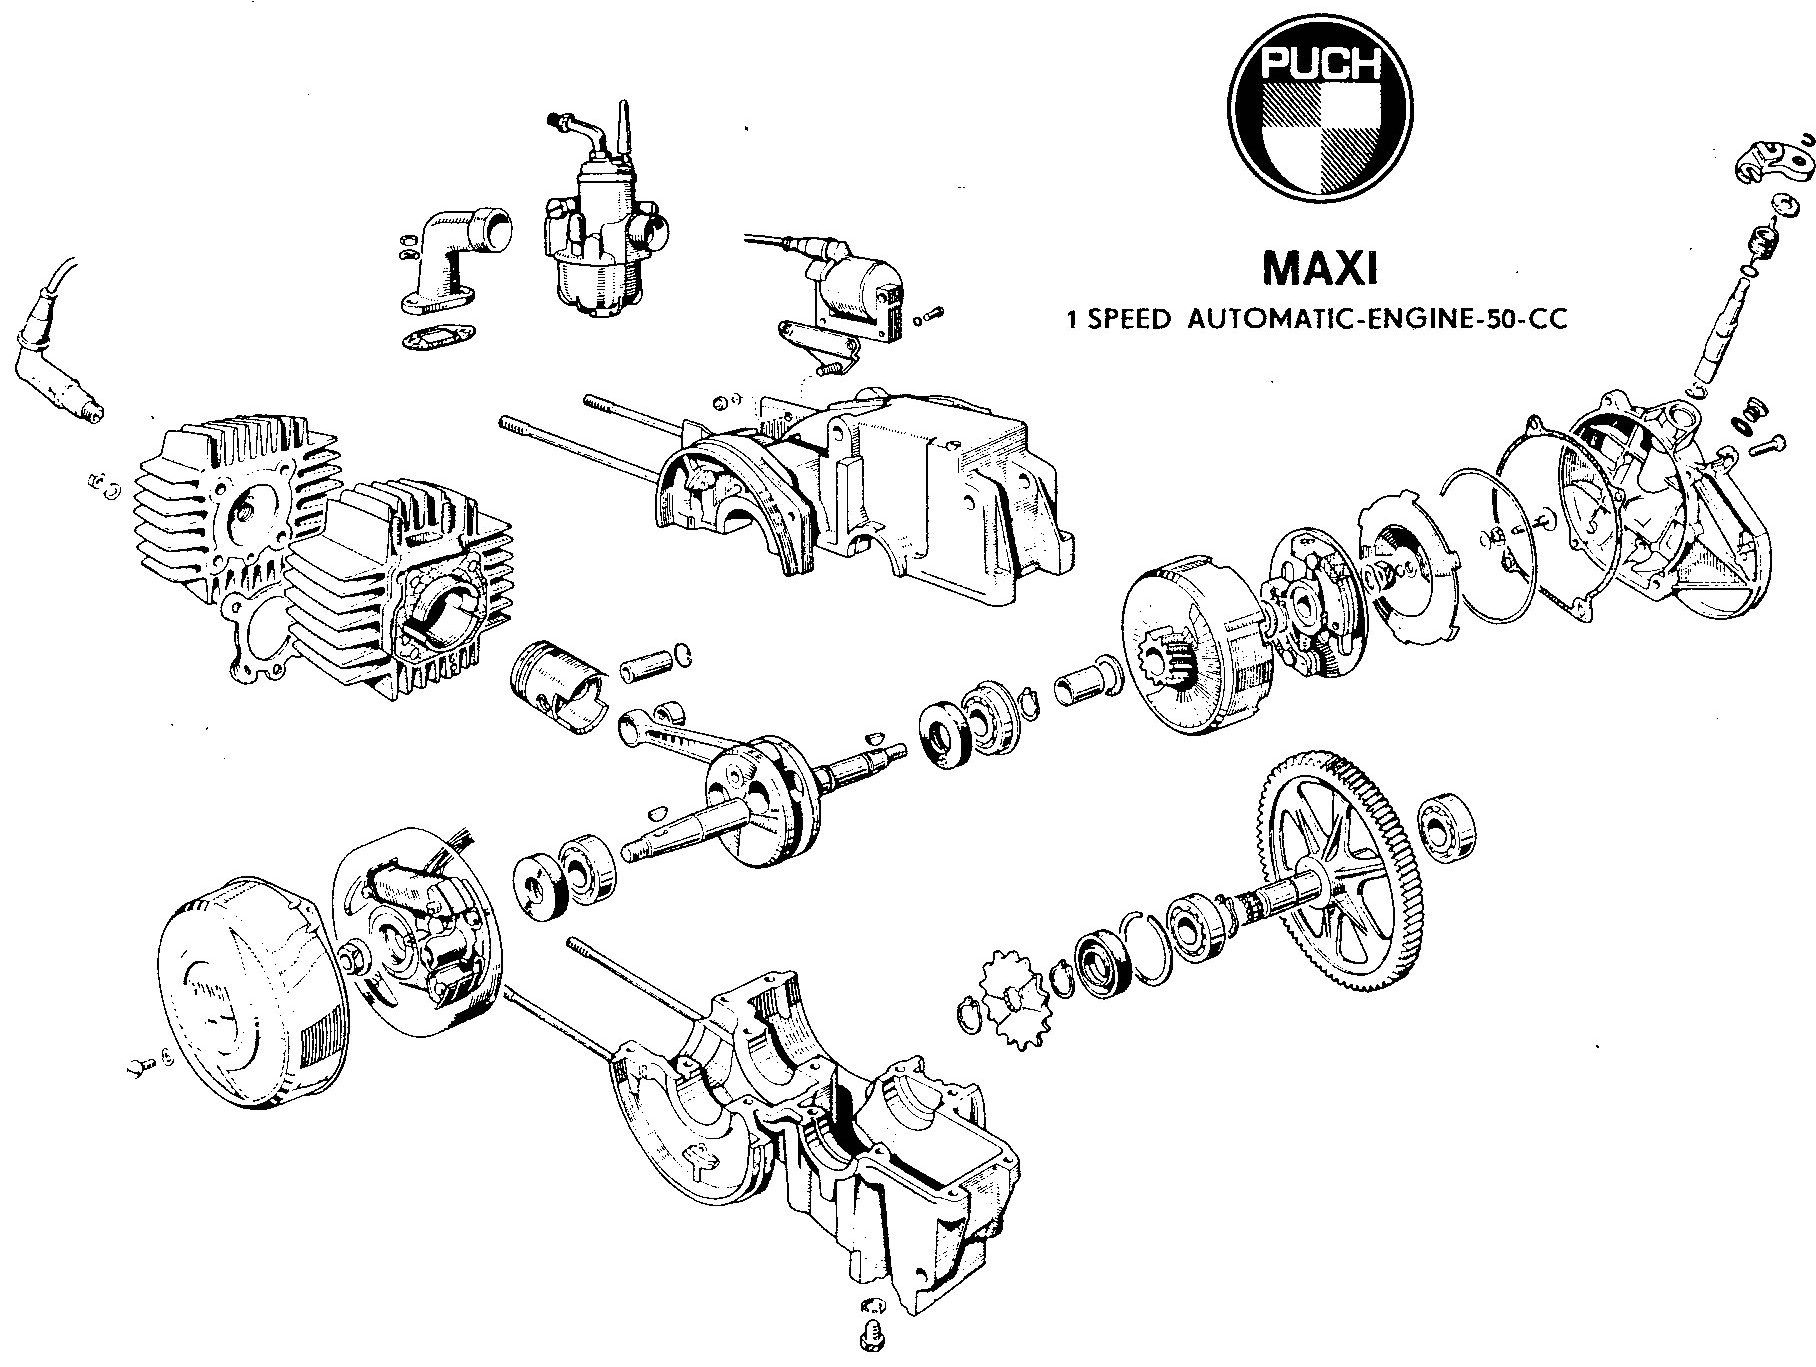 small resolution of handy diagram of the e50 puch engine